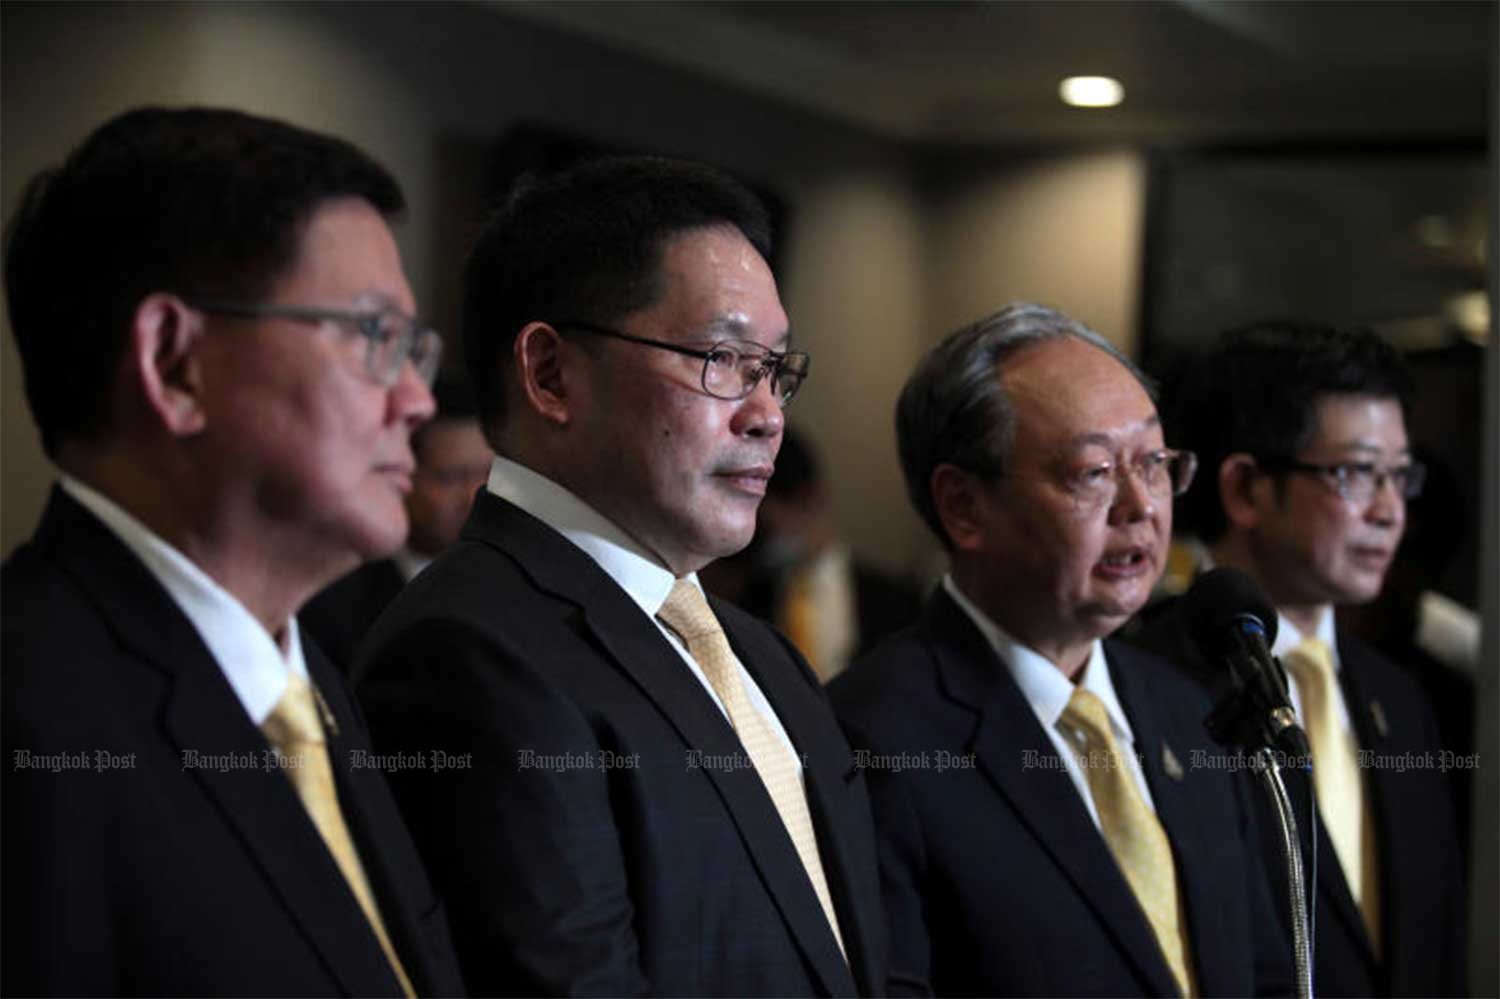 Finance Minister Uttama Savanayana, Energy Minister Sontirat Sontijirawong, Higher Education, Science and Innovations Minister Suvit Maesincee, and deputy secretary-general of the Prime Minister's Office Kobsak Pootrakul announce their resignation from the cabinet, effective on Thursday. (Photo: Chanat Katanyu)